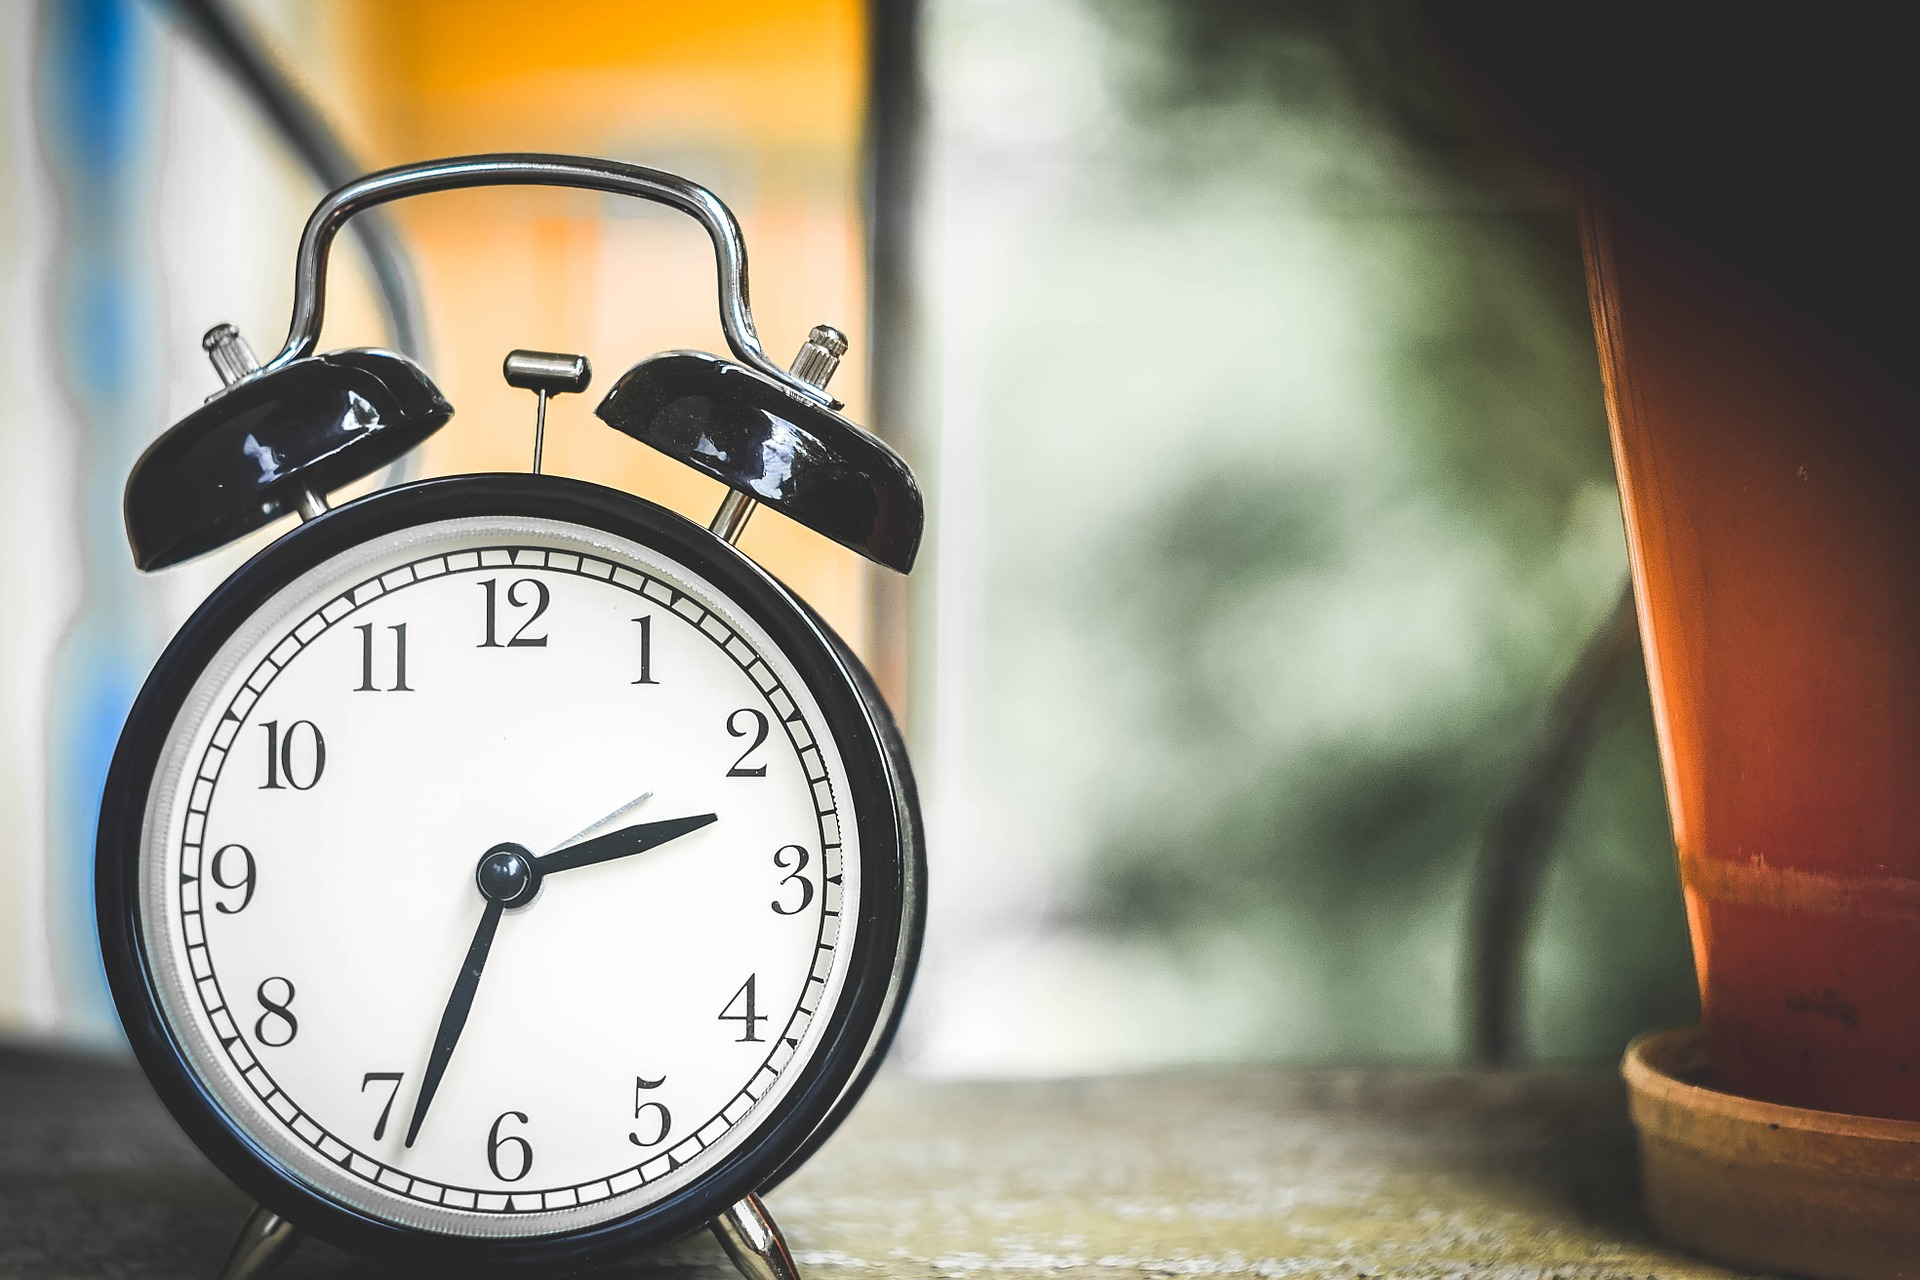 Daylight Saving Time 2020: When Does the Time Change?